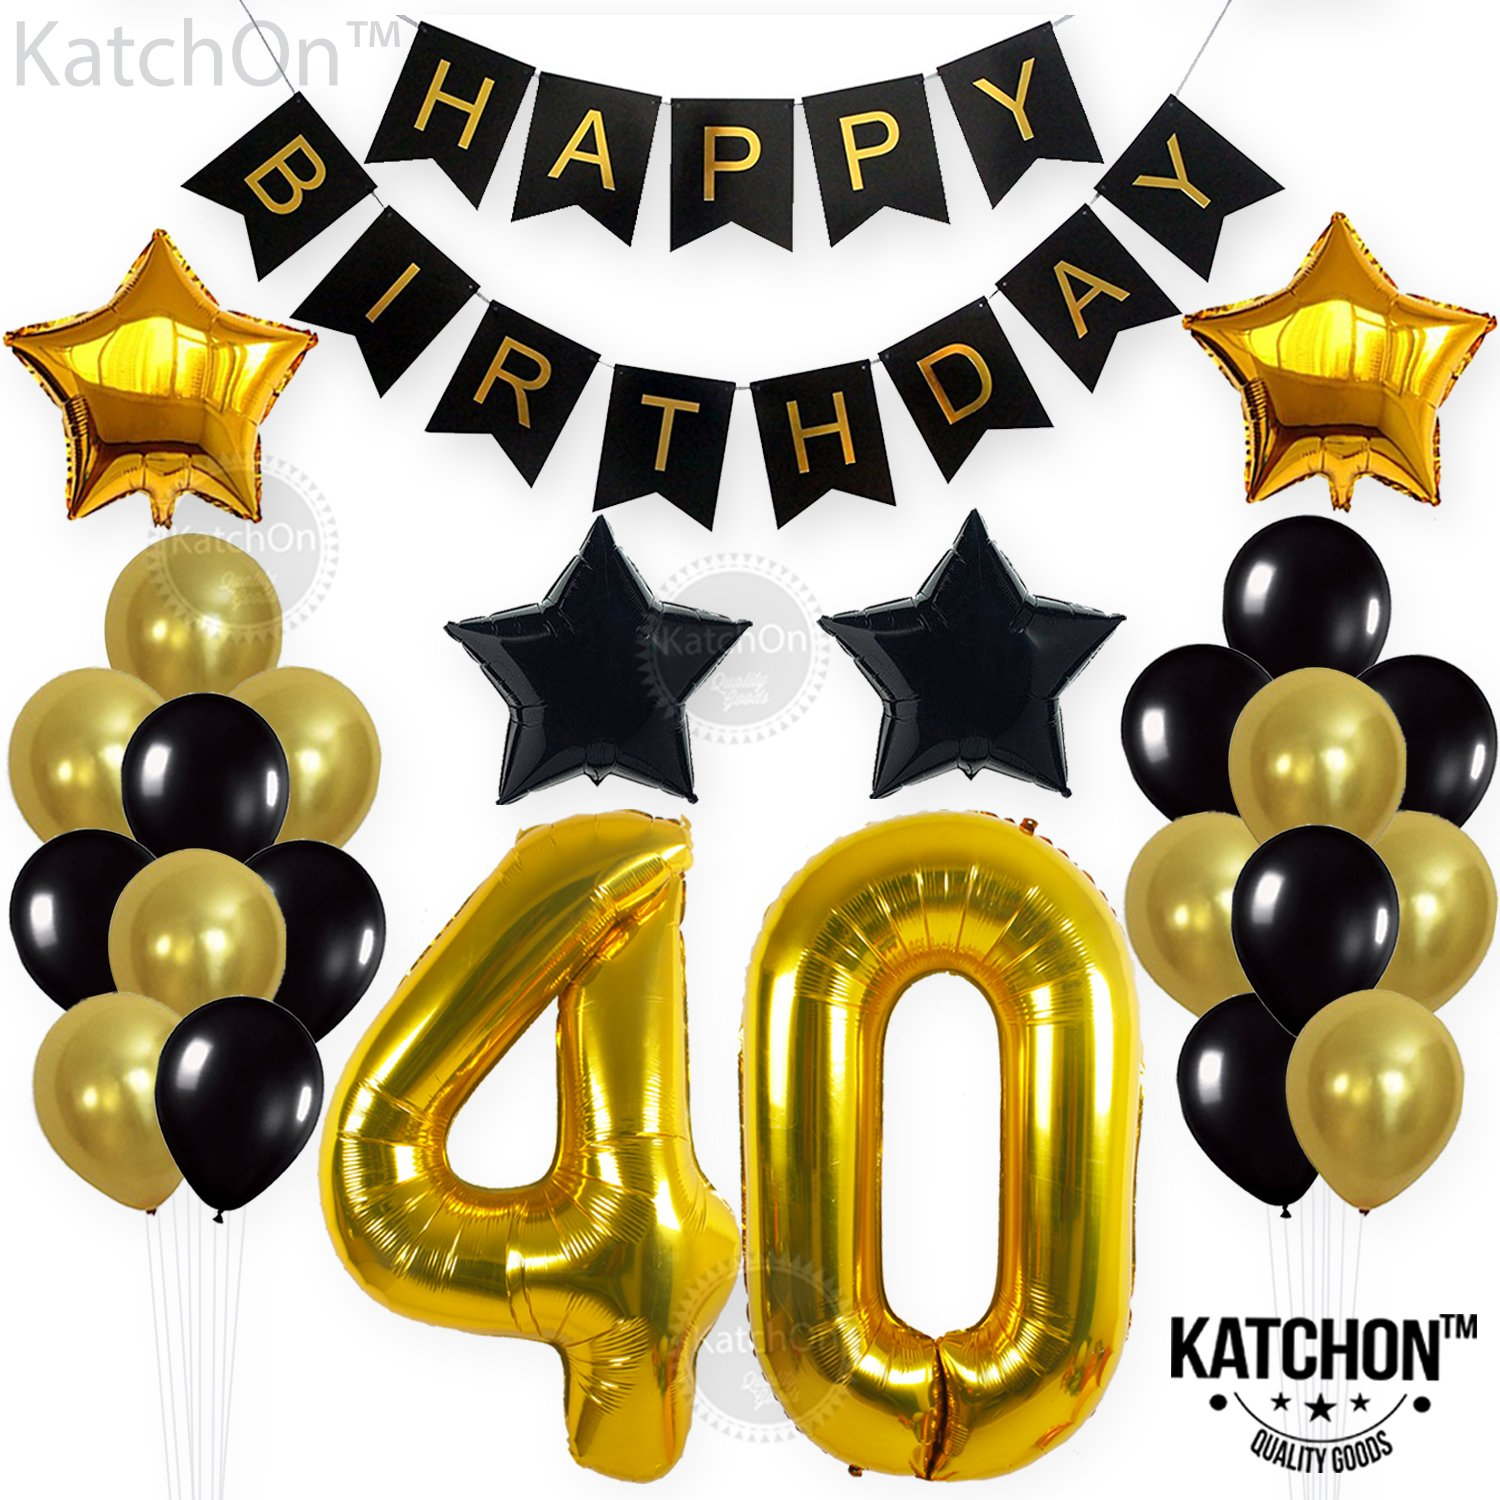 KATCHON 1 11 Decorations Happy Birthday Banner, 40th Balloons,Gold and Black, Number Perfect 40 Years Old Par, M by KATCHON (Image #7)